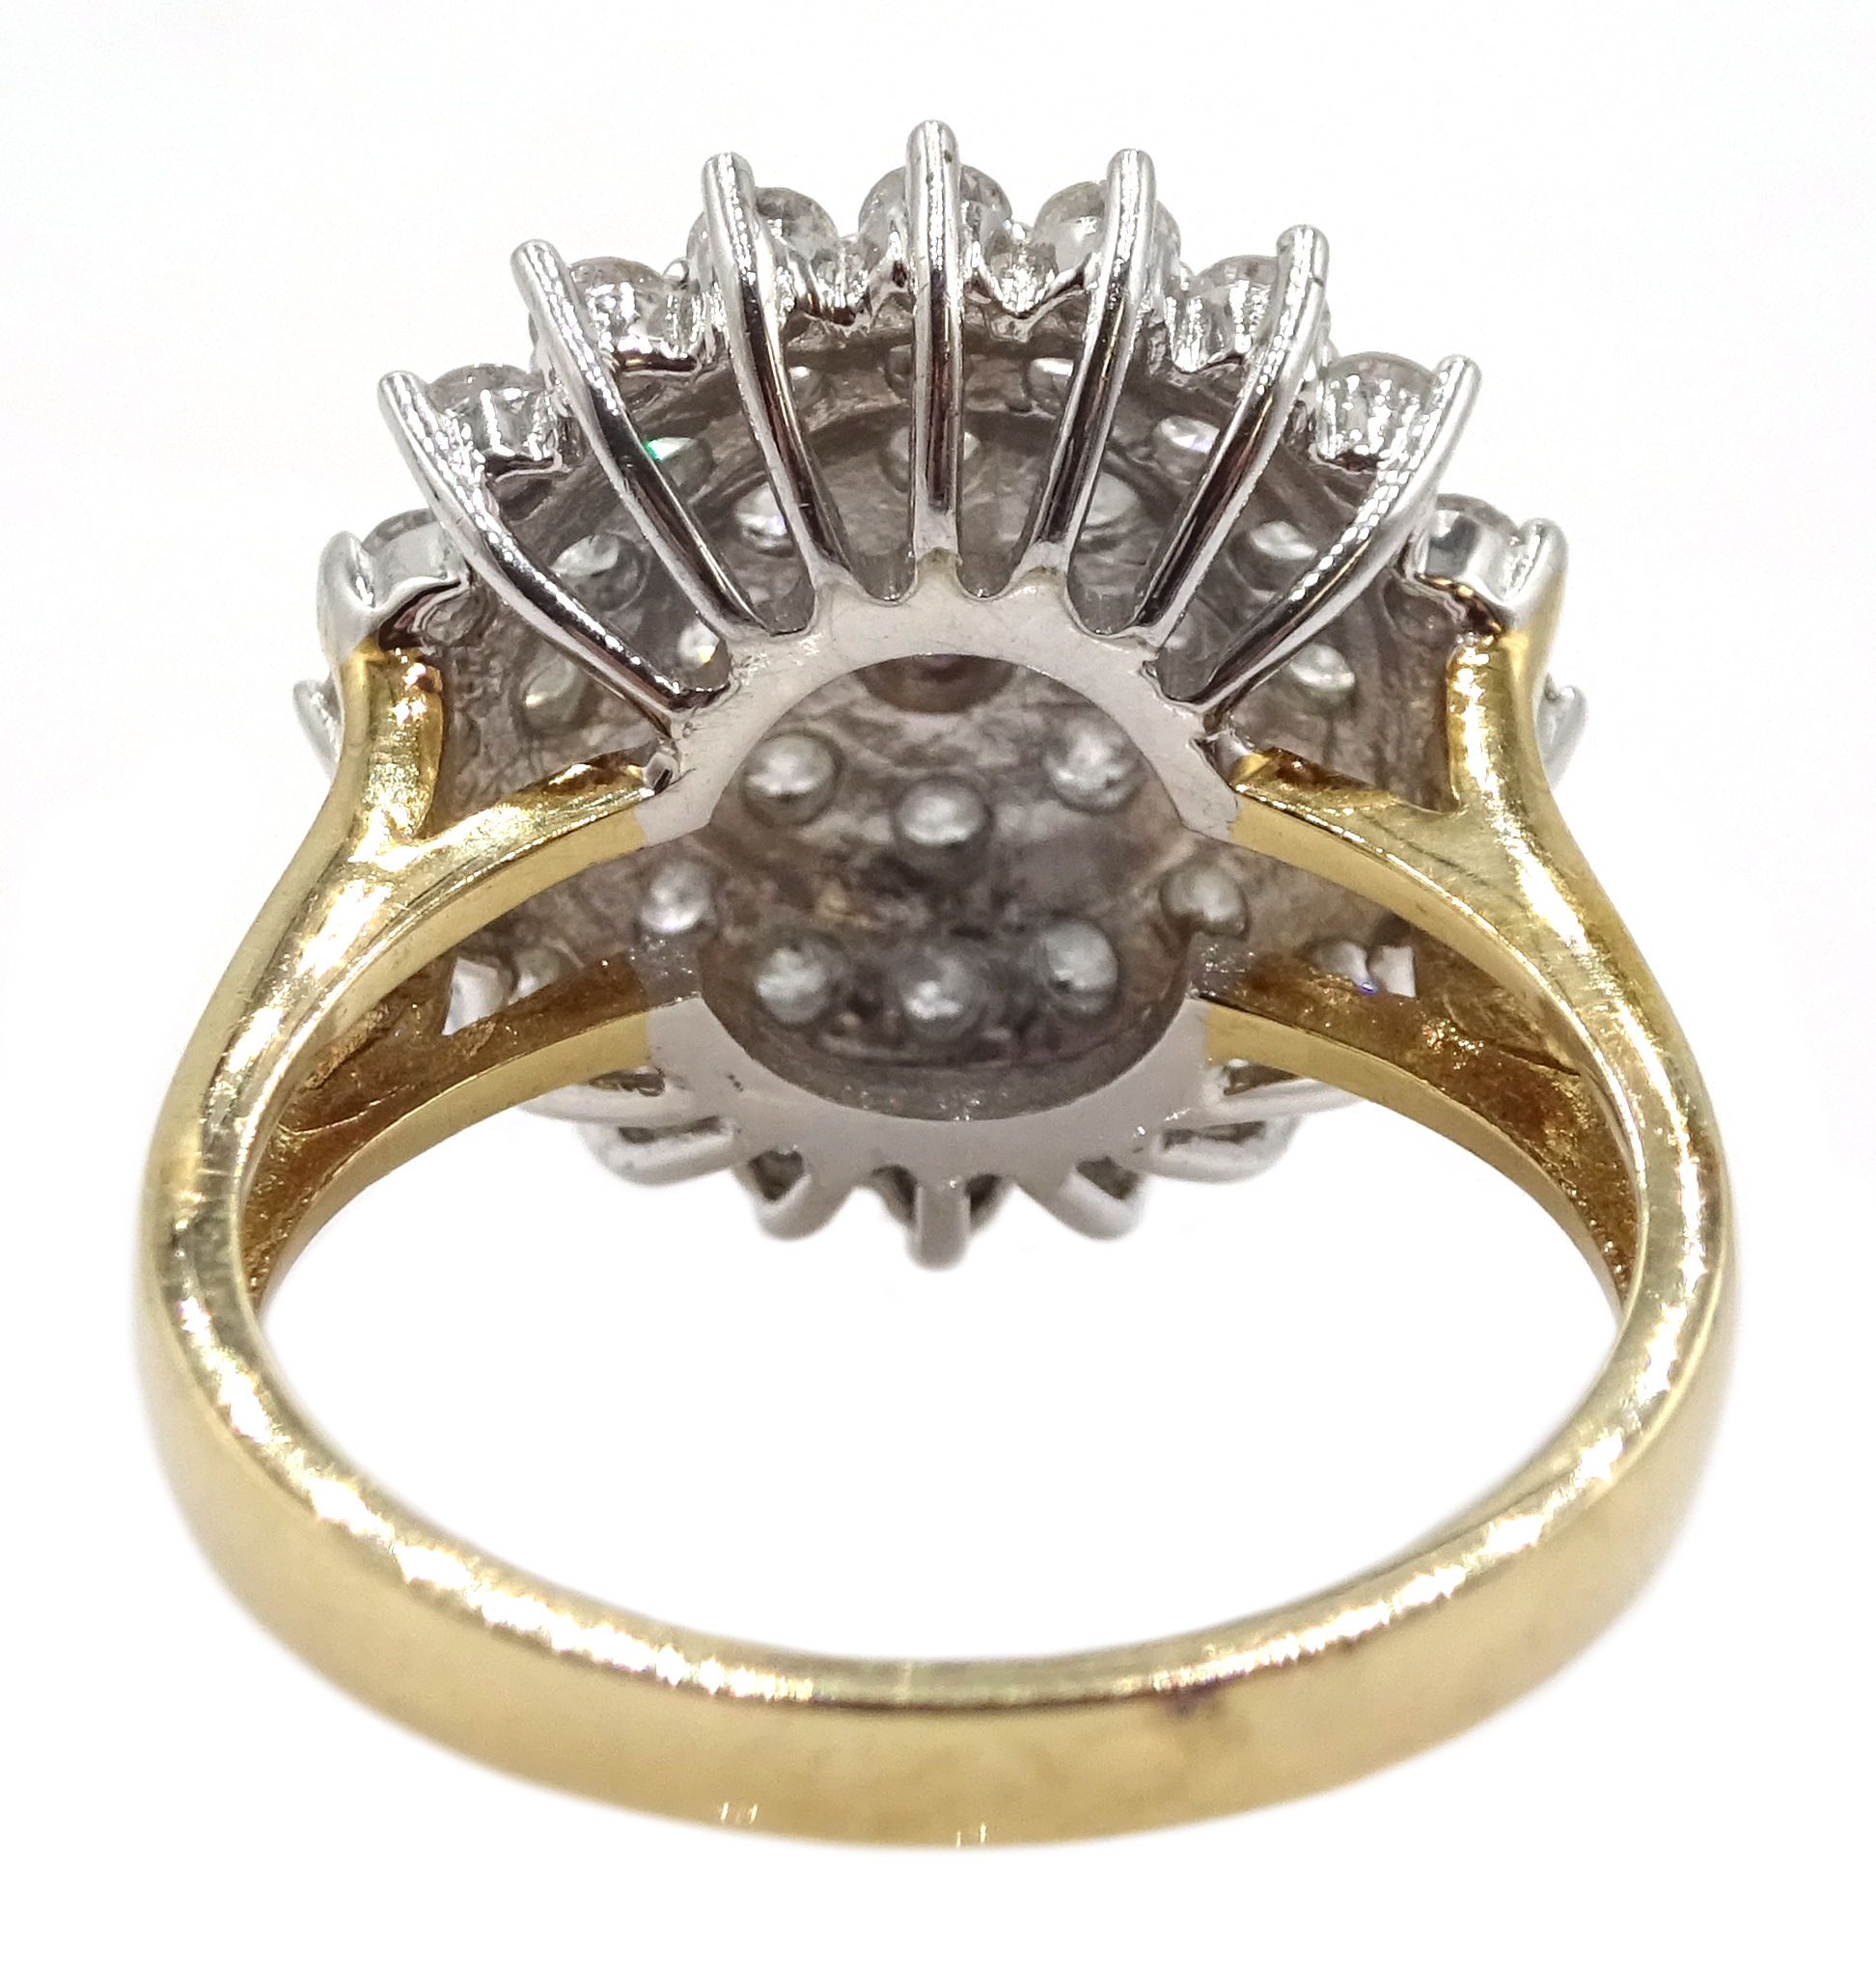 9ct gold cluster ring - Image 6 of 6